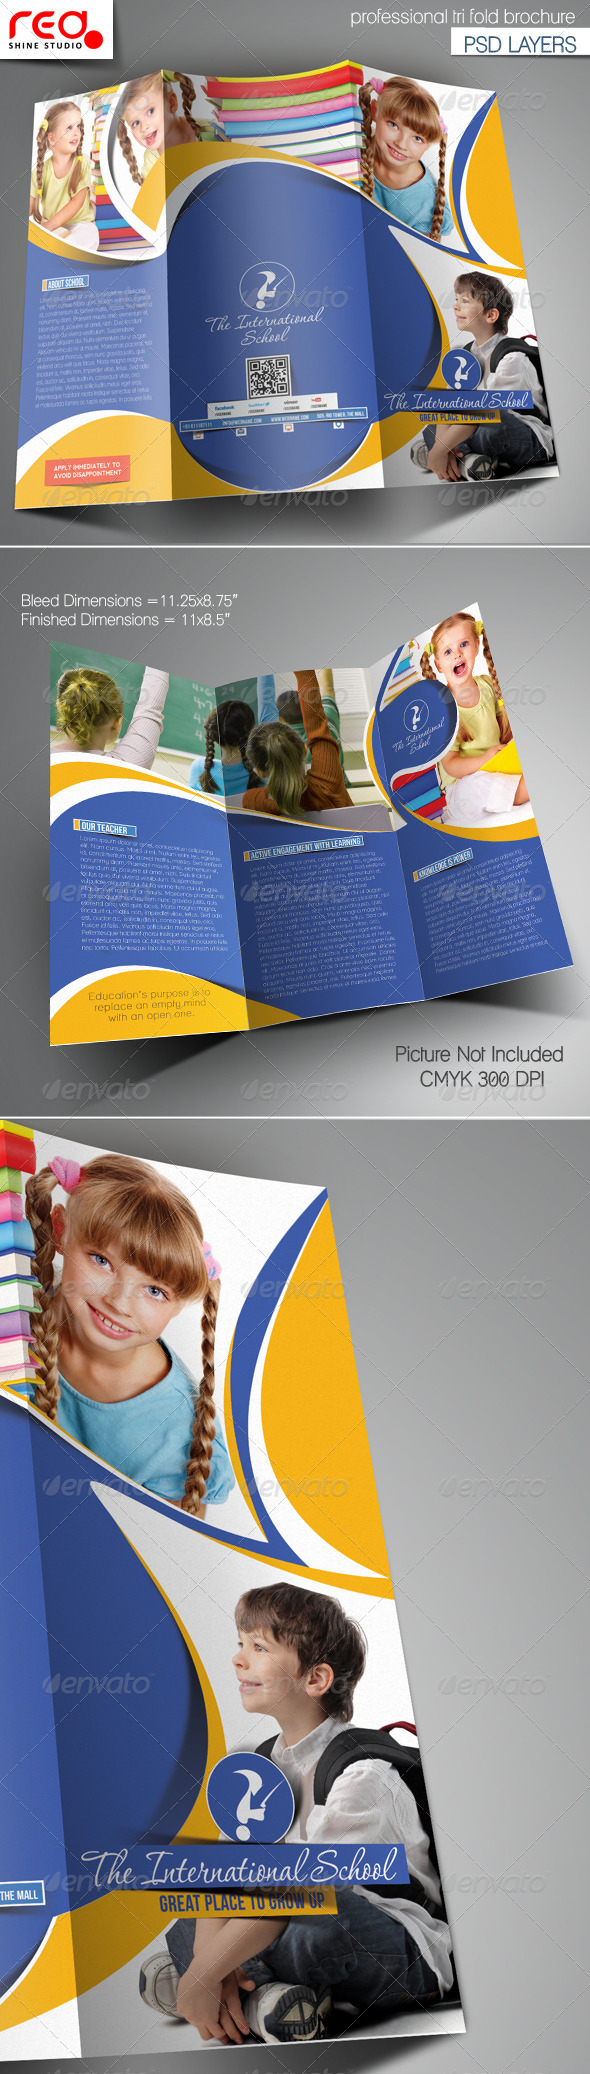 Junior School Promotion Trifold Brochure Template - Corporate Brochures